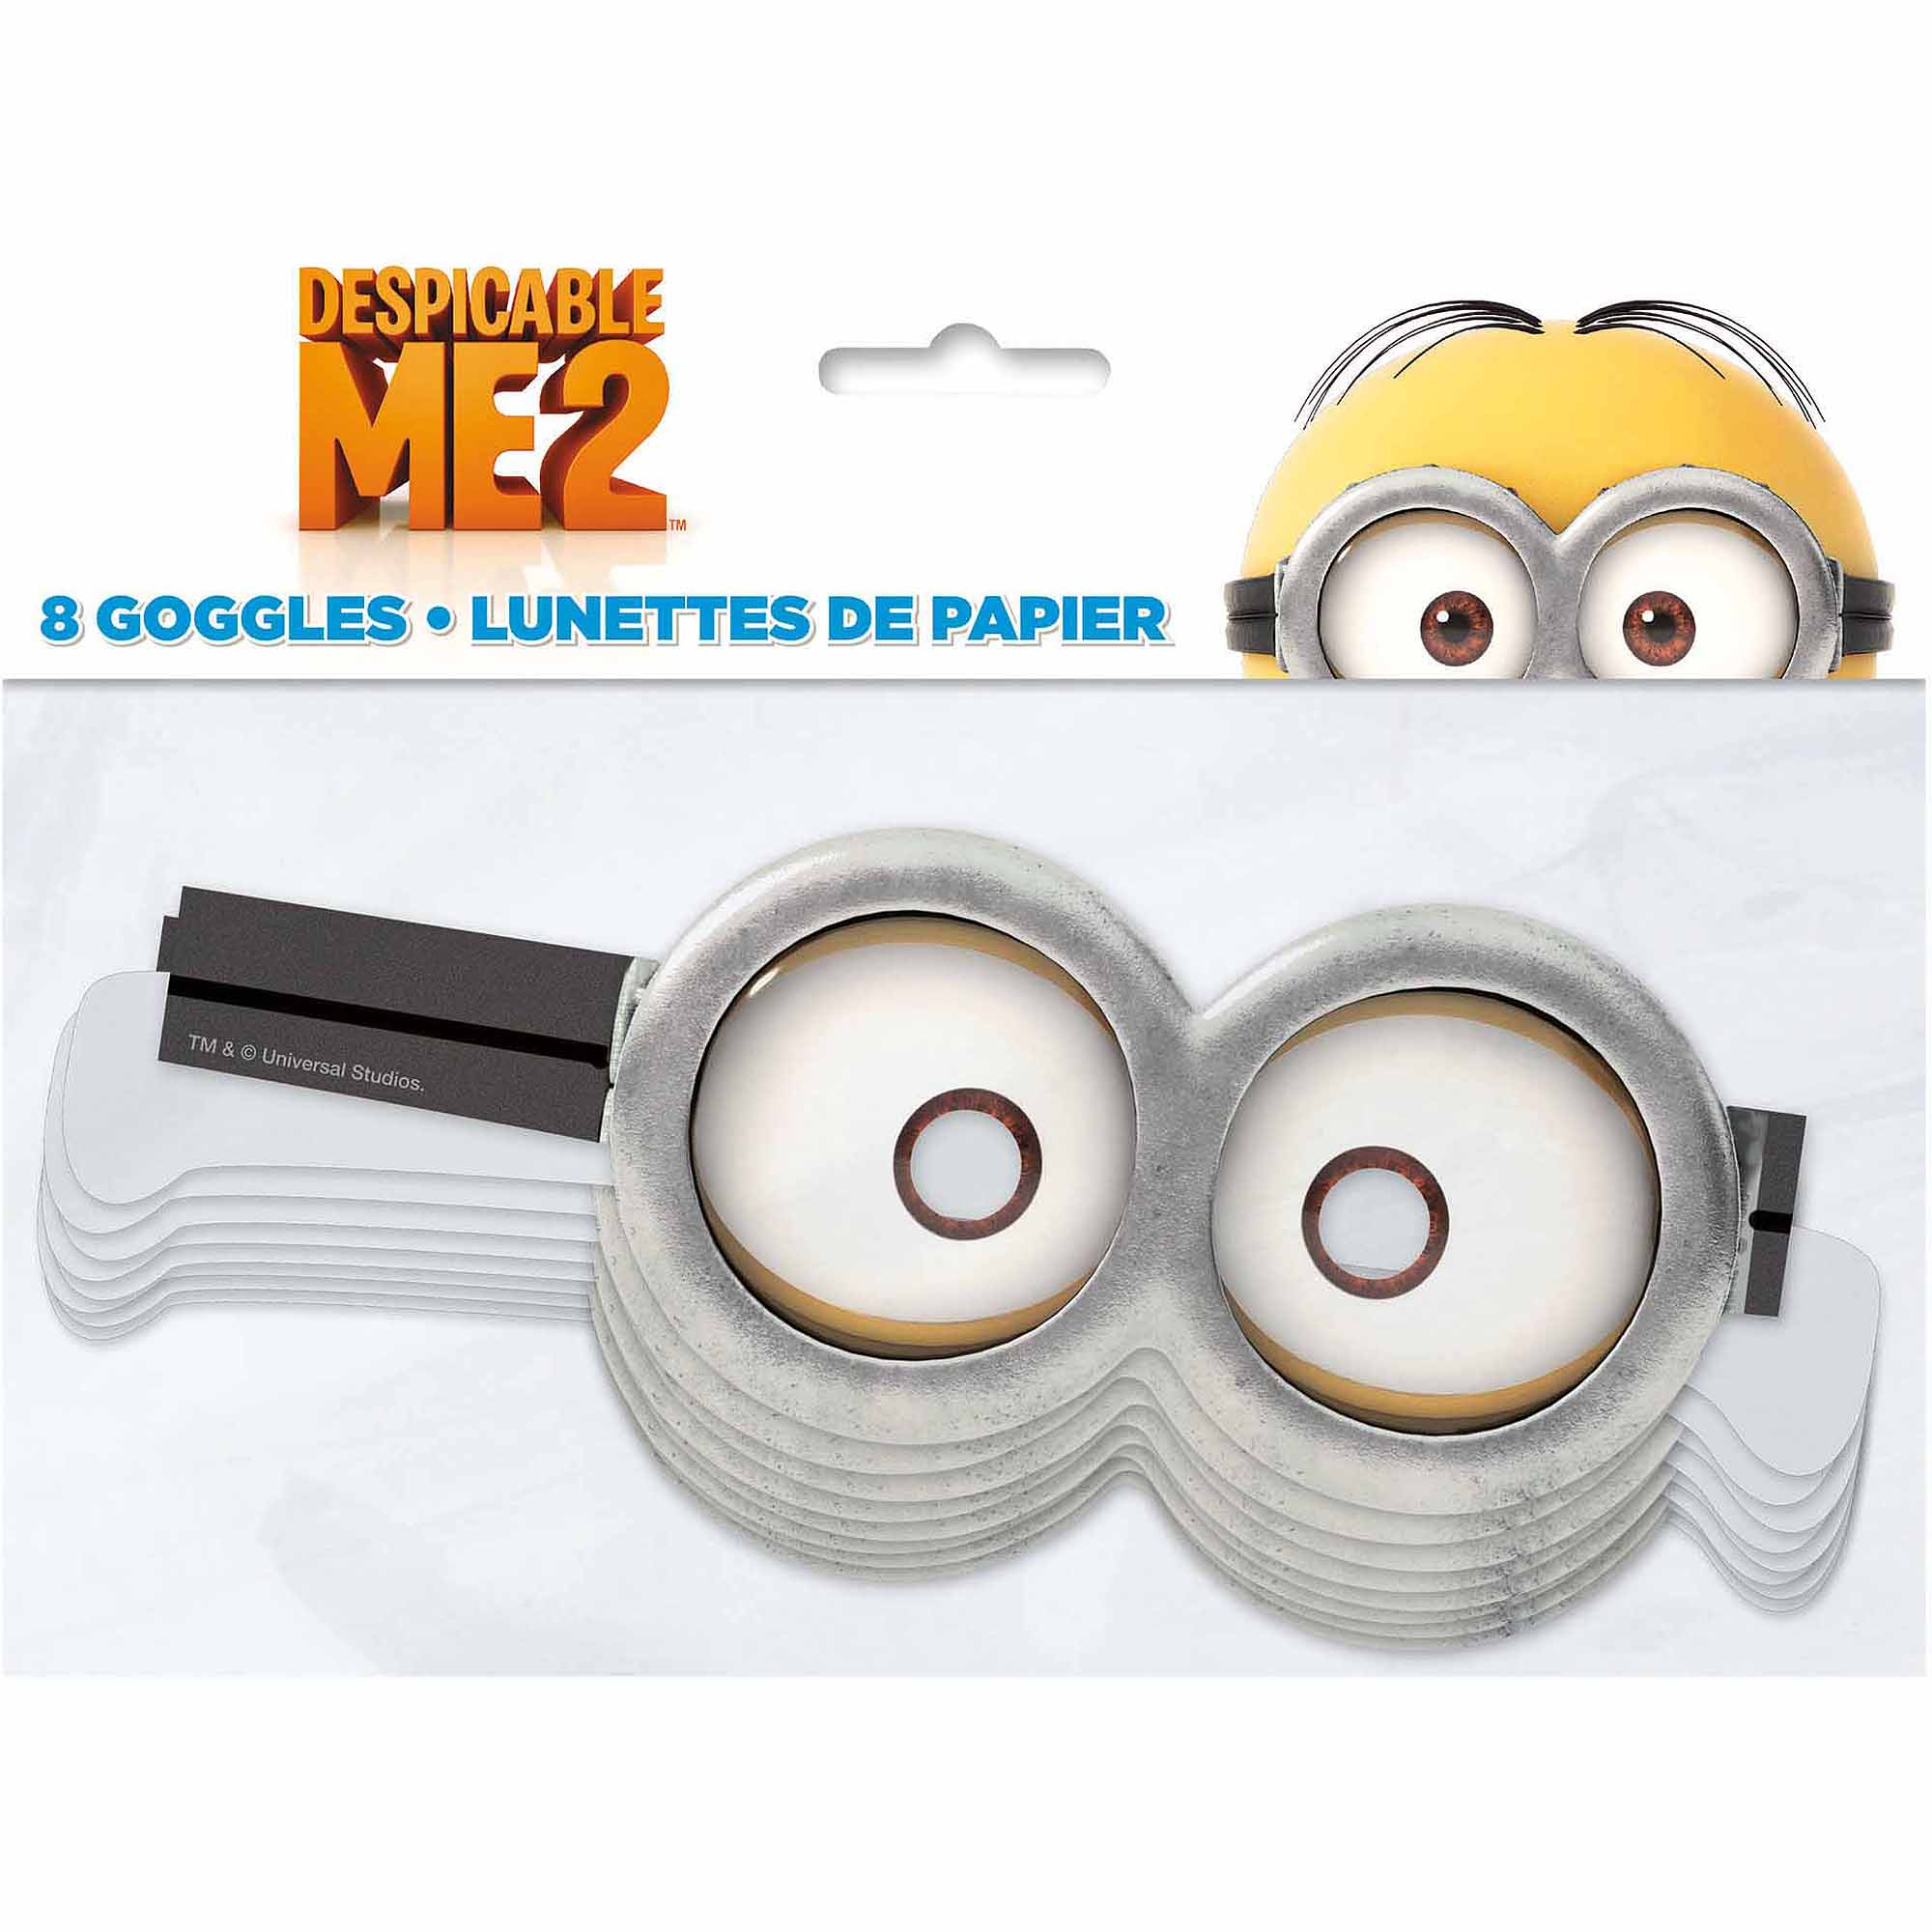 Paper Despicable Me Minion Goggles, 8ct